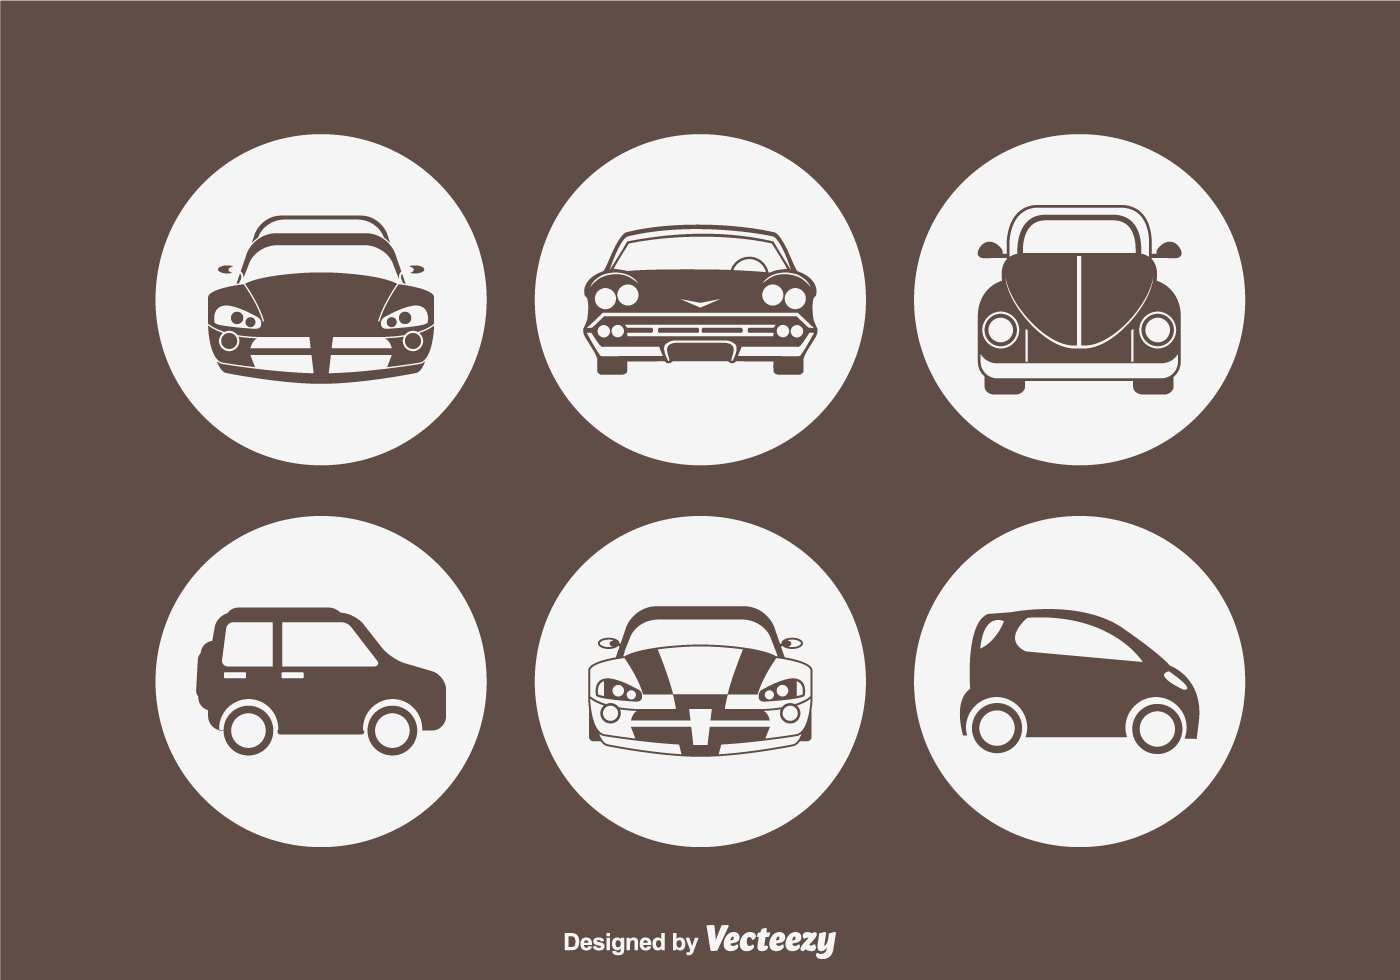 free-car-silhouette-vector-icons.jpg